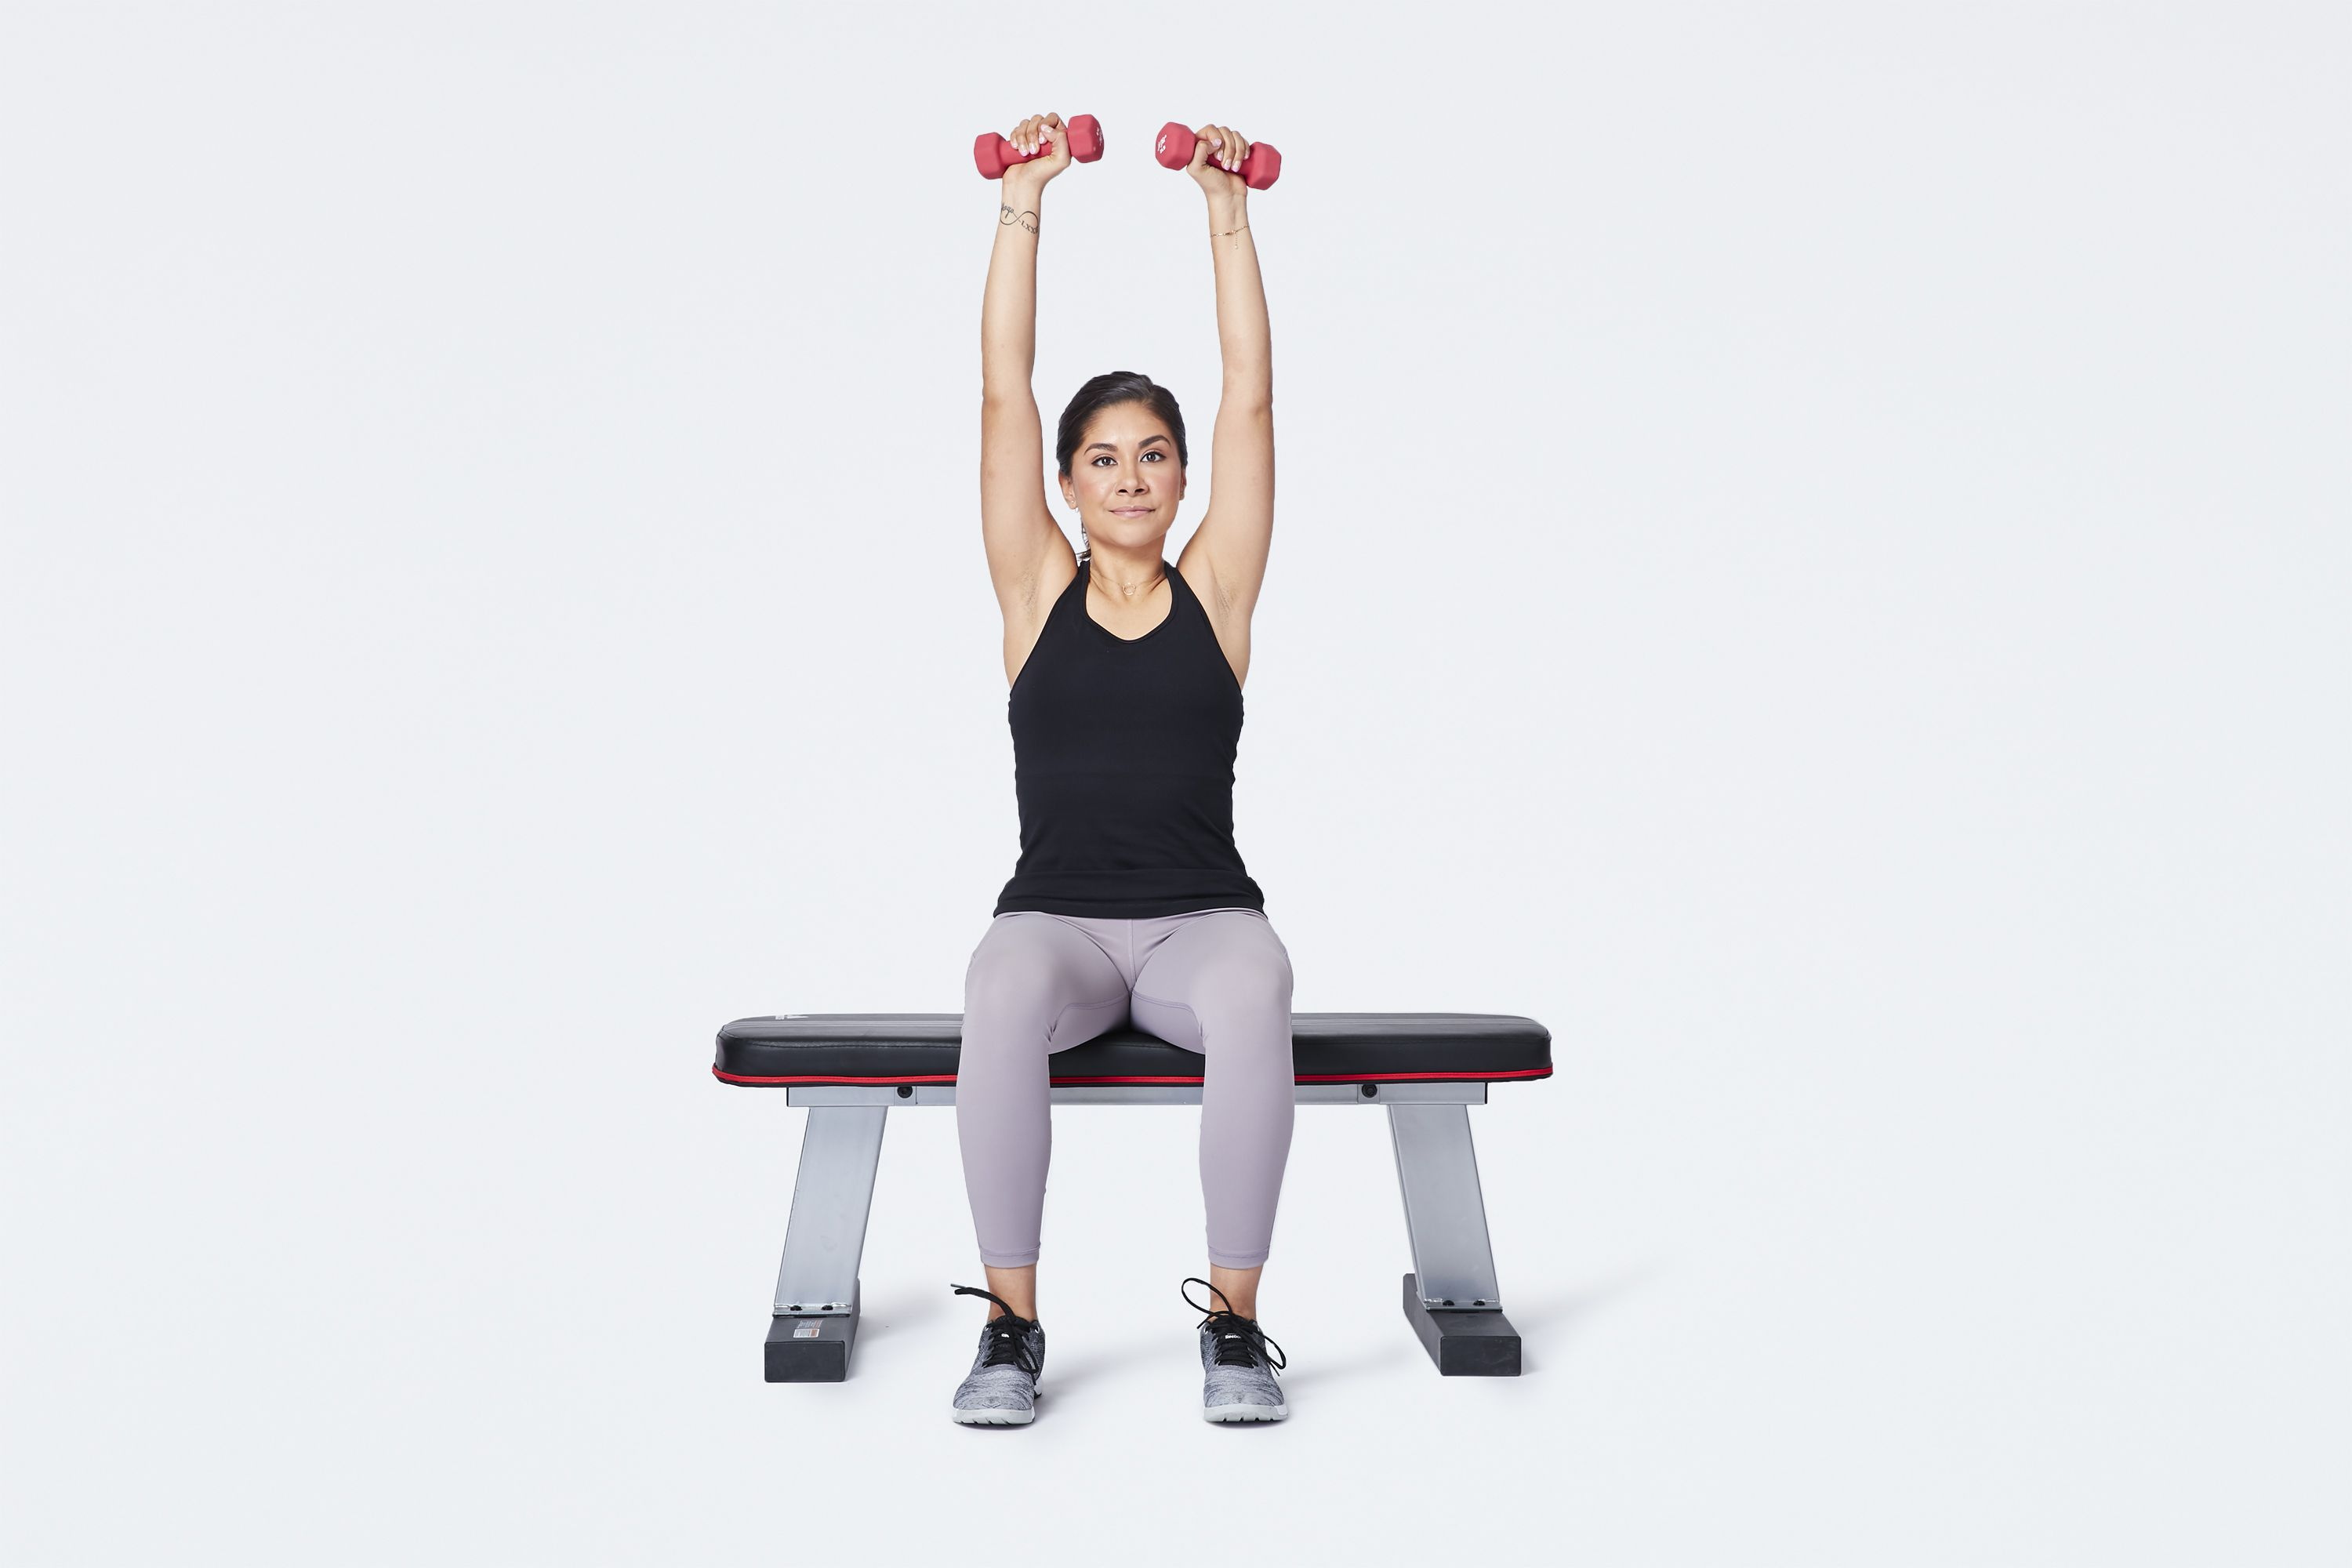 woman doing seated barbell shoulder press